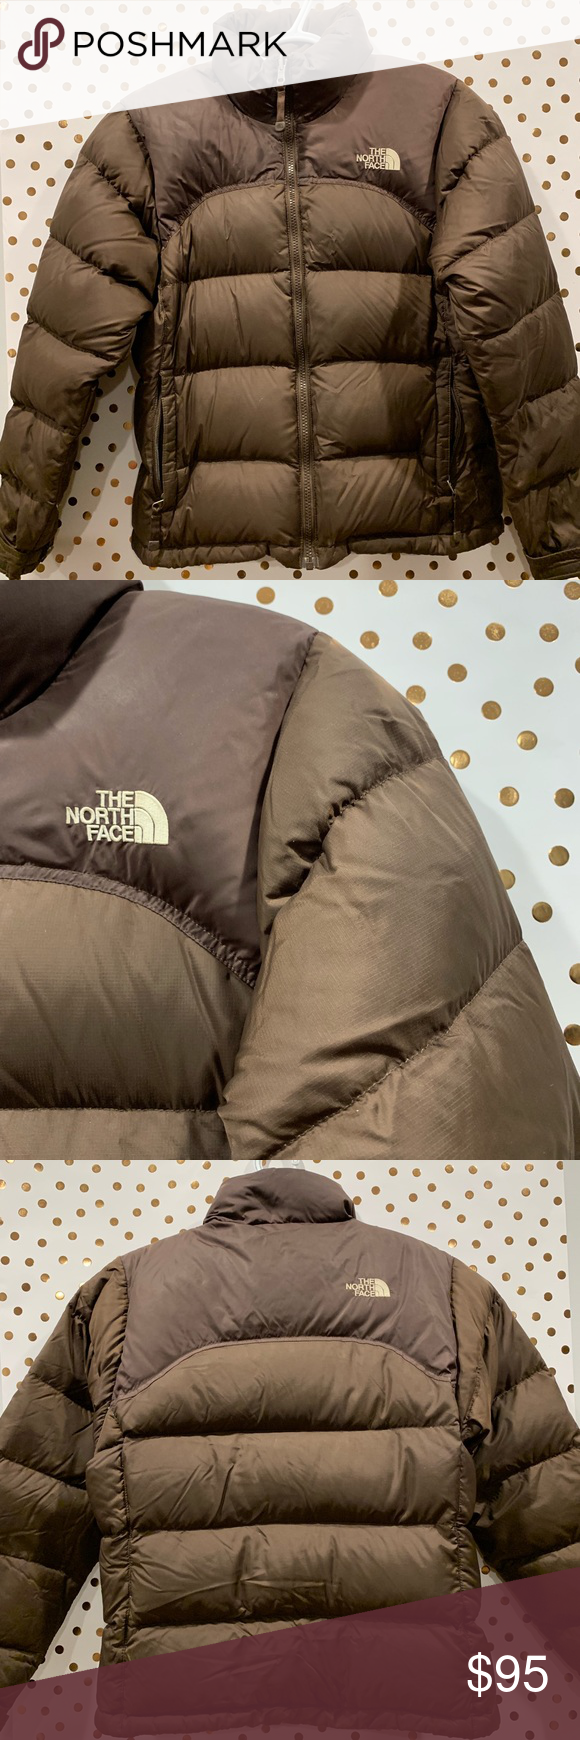 The North Face Women S Nuptse 700 Puffer Jacket North Face Women The North Face Jackets [ 1740 x 580 Pixel ]